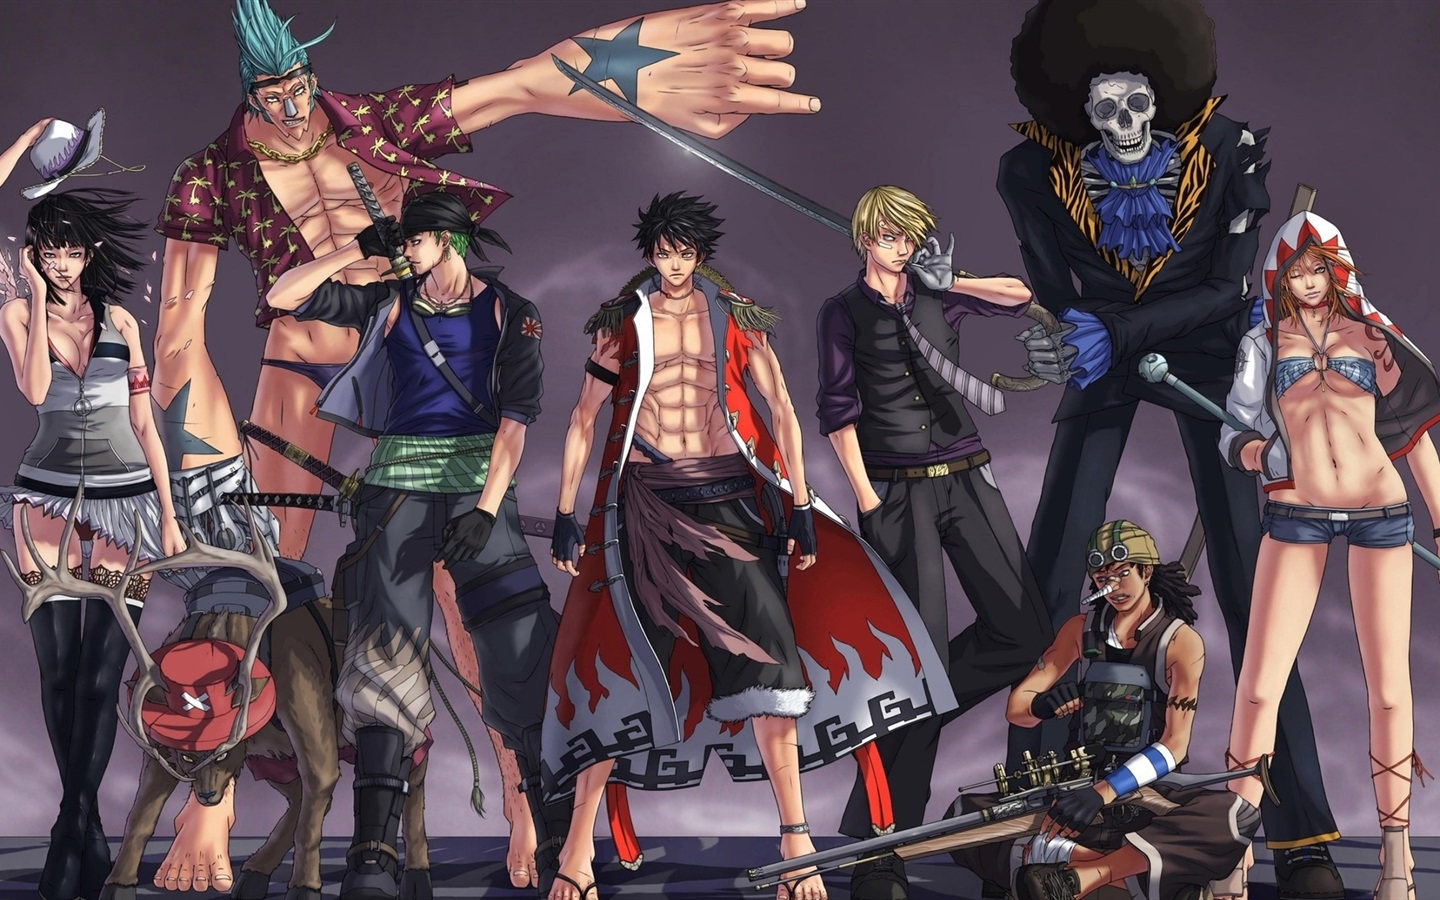 By nick pino, henry st leger 08 april 2021 what is 4k? One Piece Wallpaper 4k - 1440x900 - Download HD Wallpaper ...